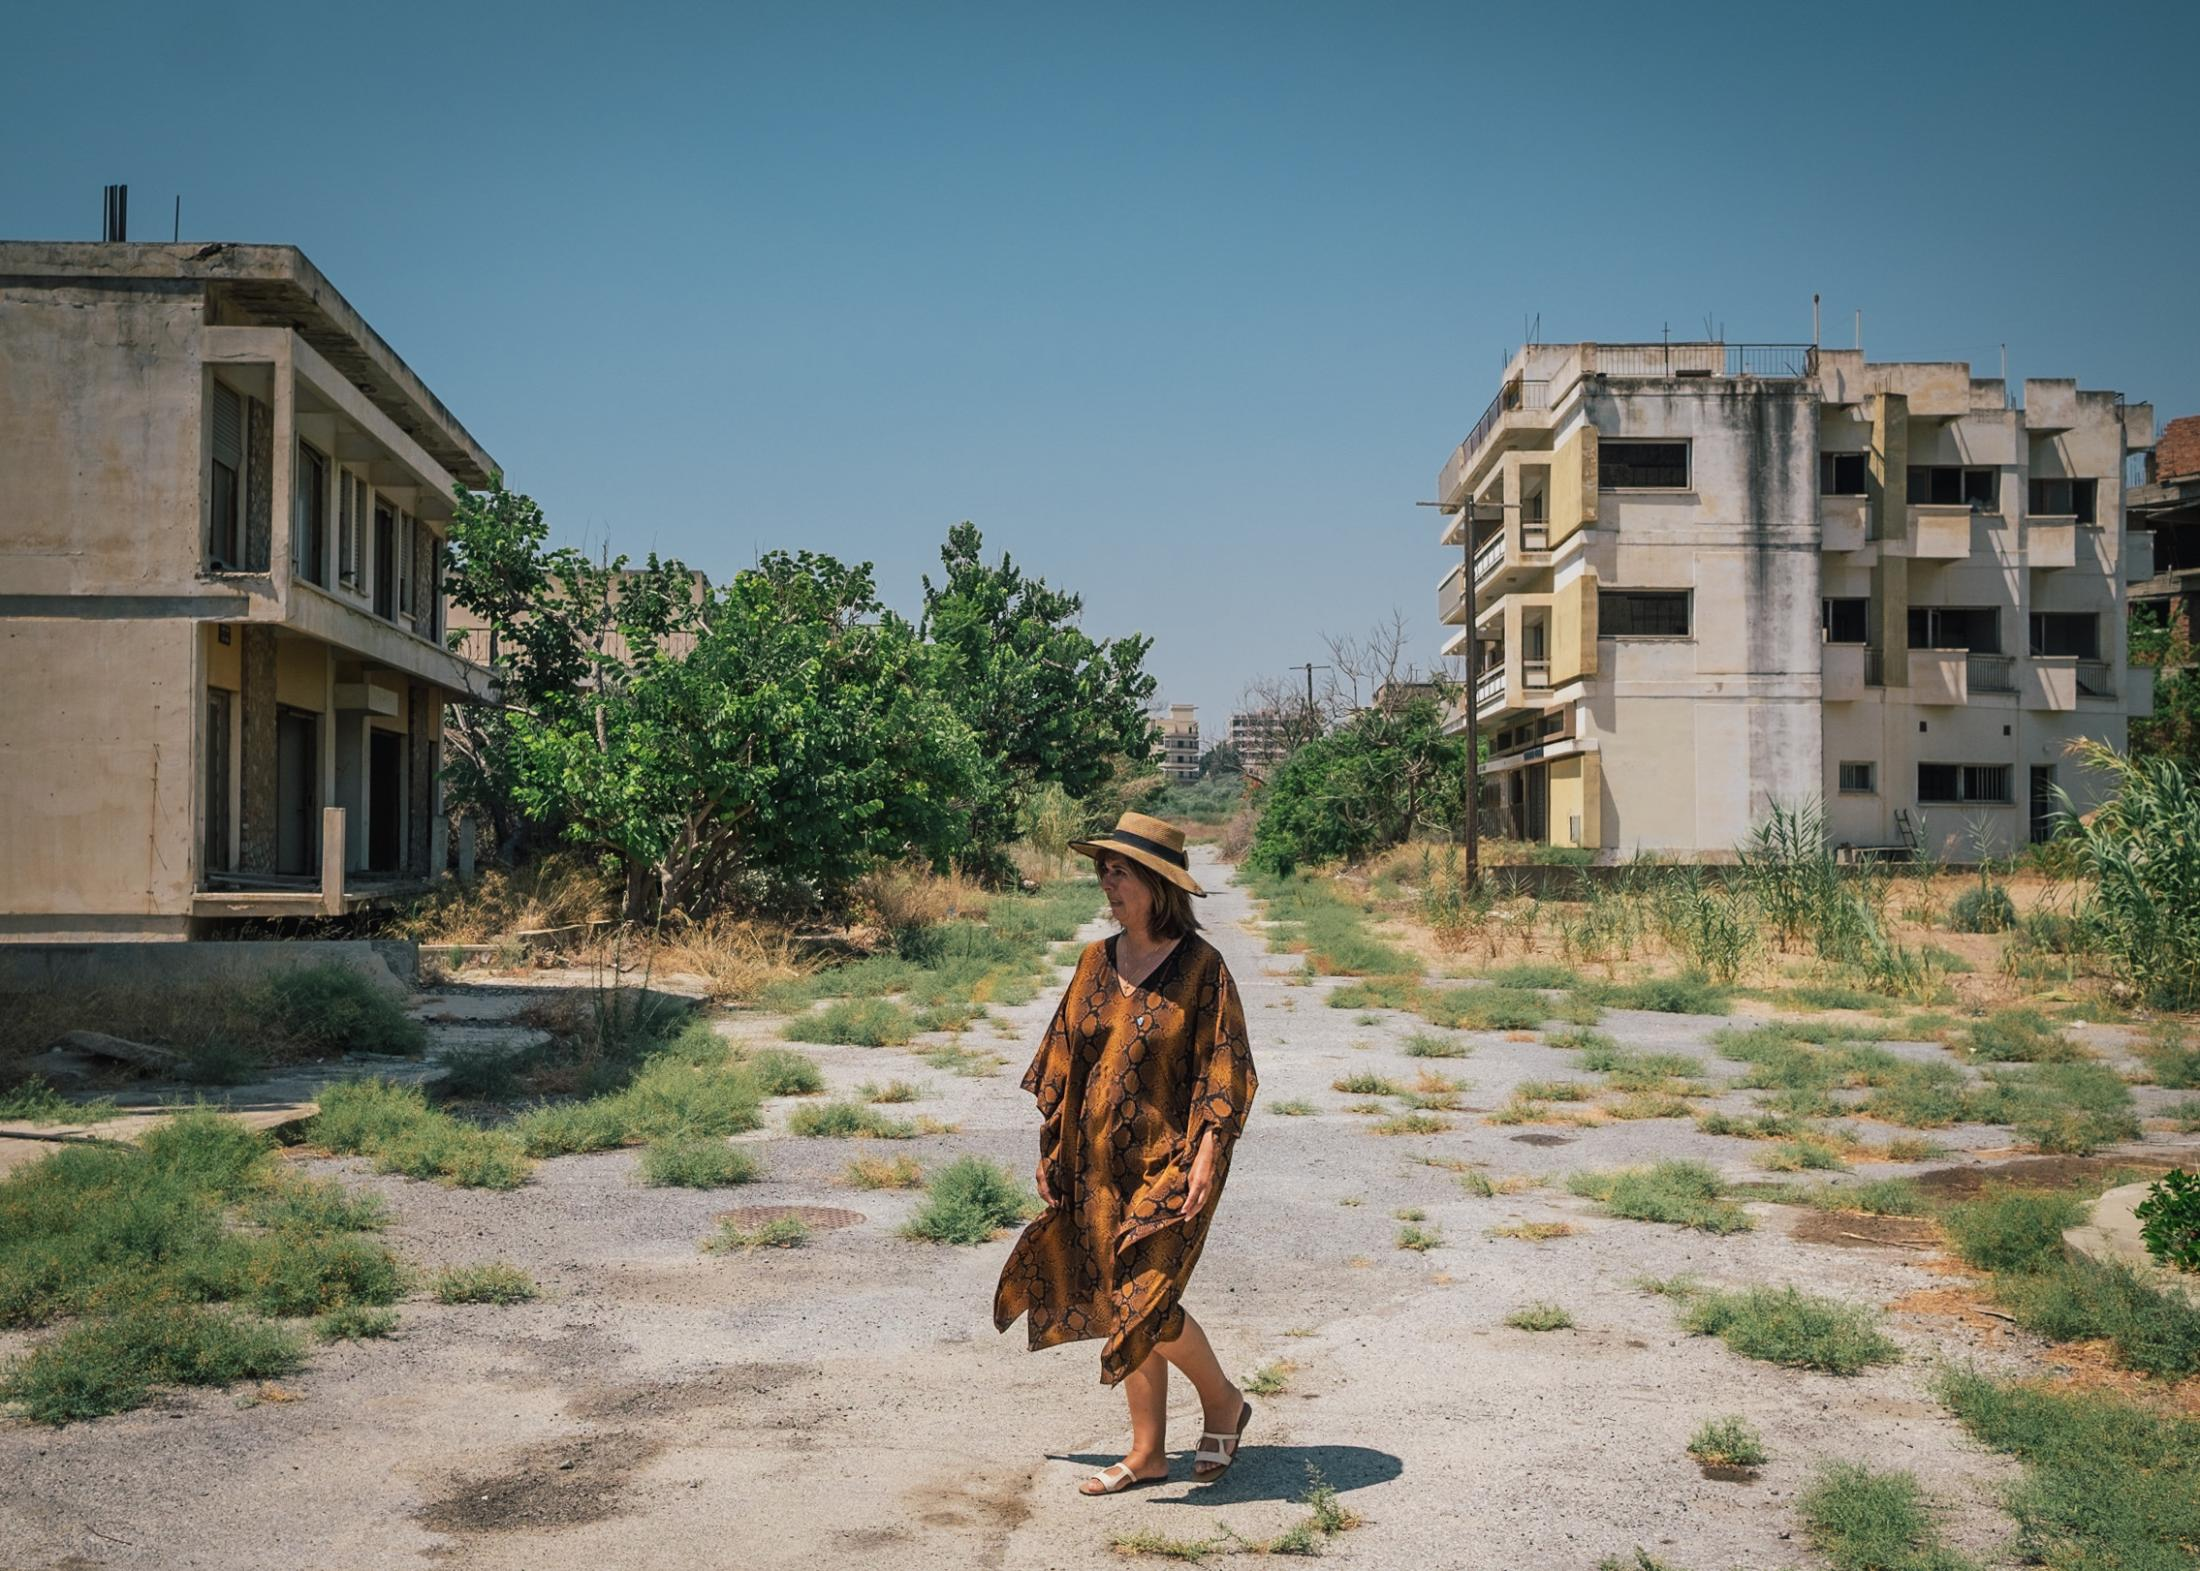 Tasoula Hadjitofi stands on a closed road in the ghost town of Varosia, which leads to her former home from which she fled as a 15-year-old girl.